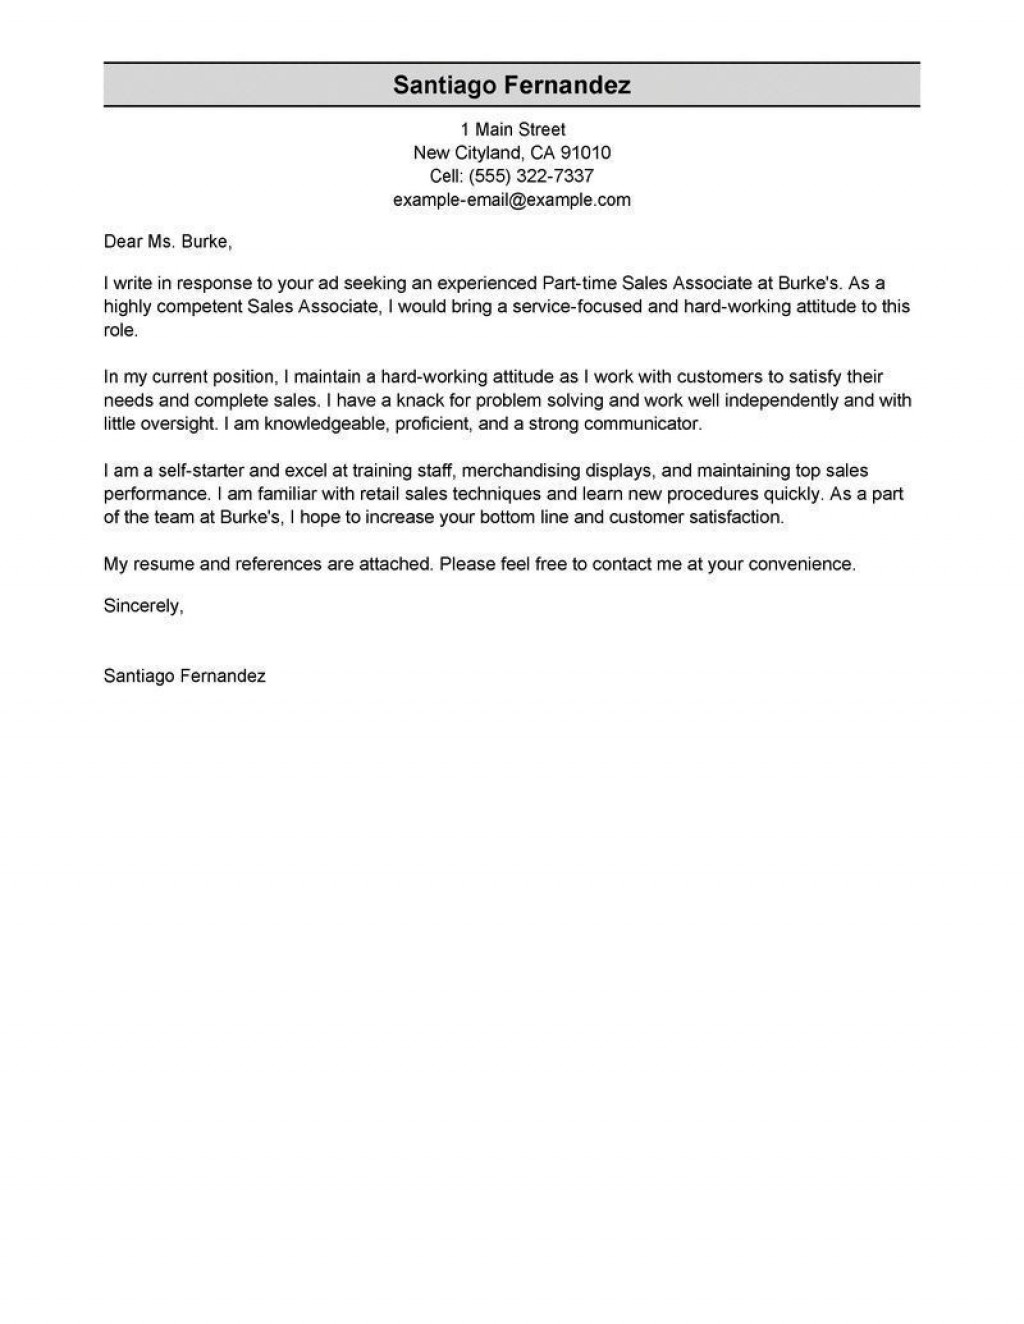 003 Unique Sale Cover Letter Template High Def  Account Manager Word RepLarge